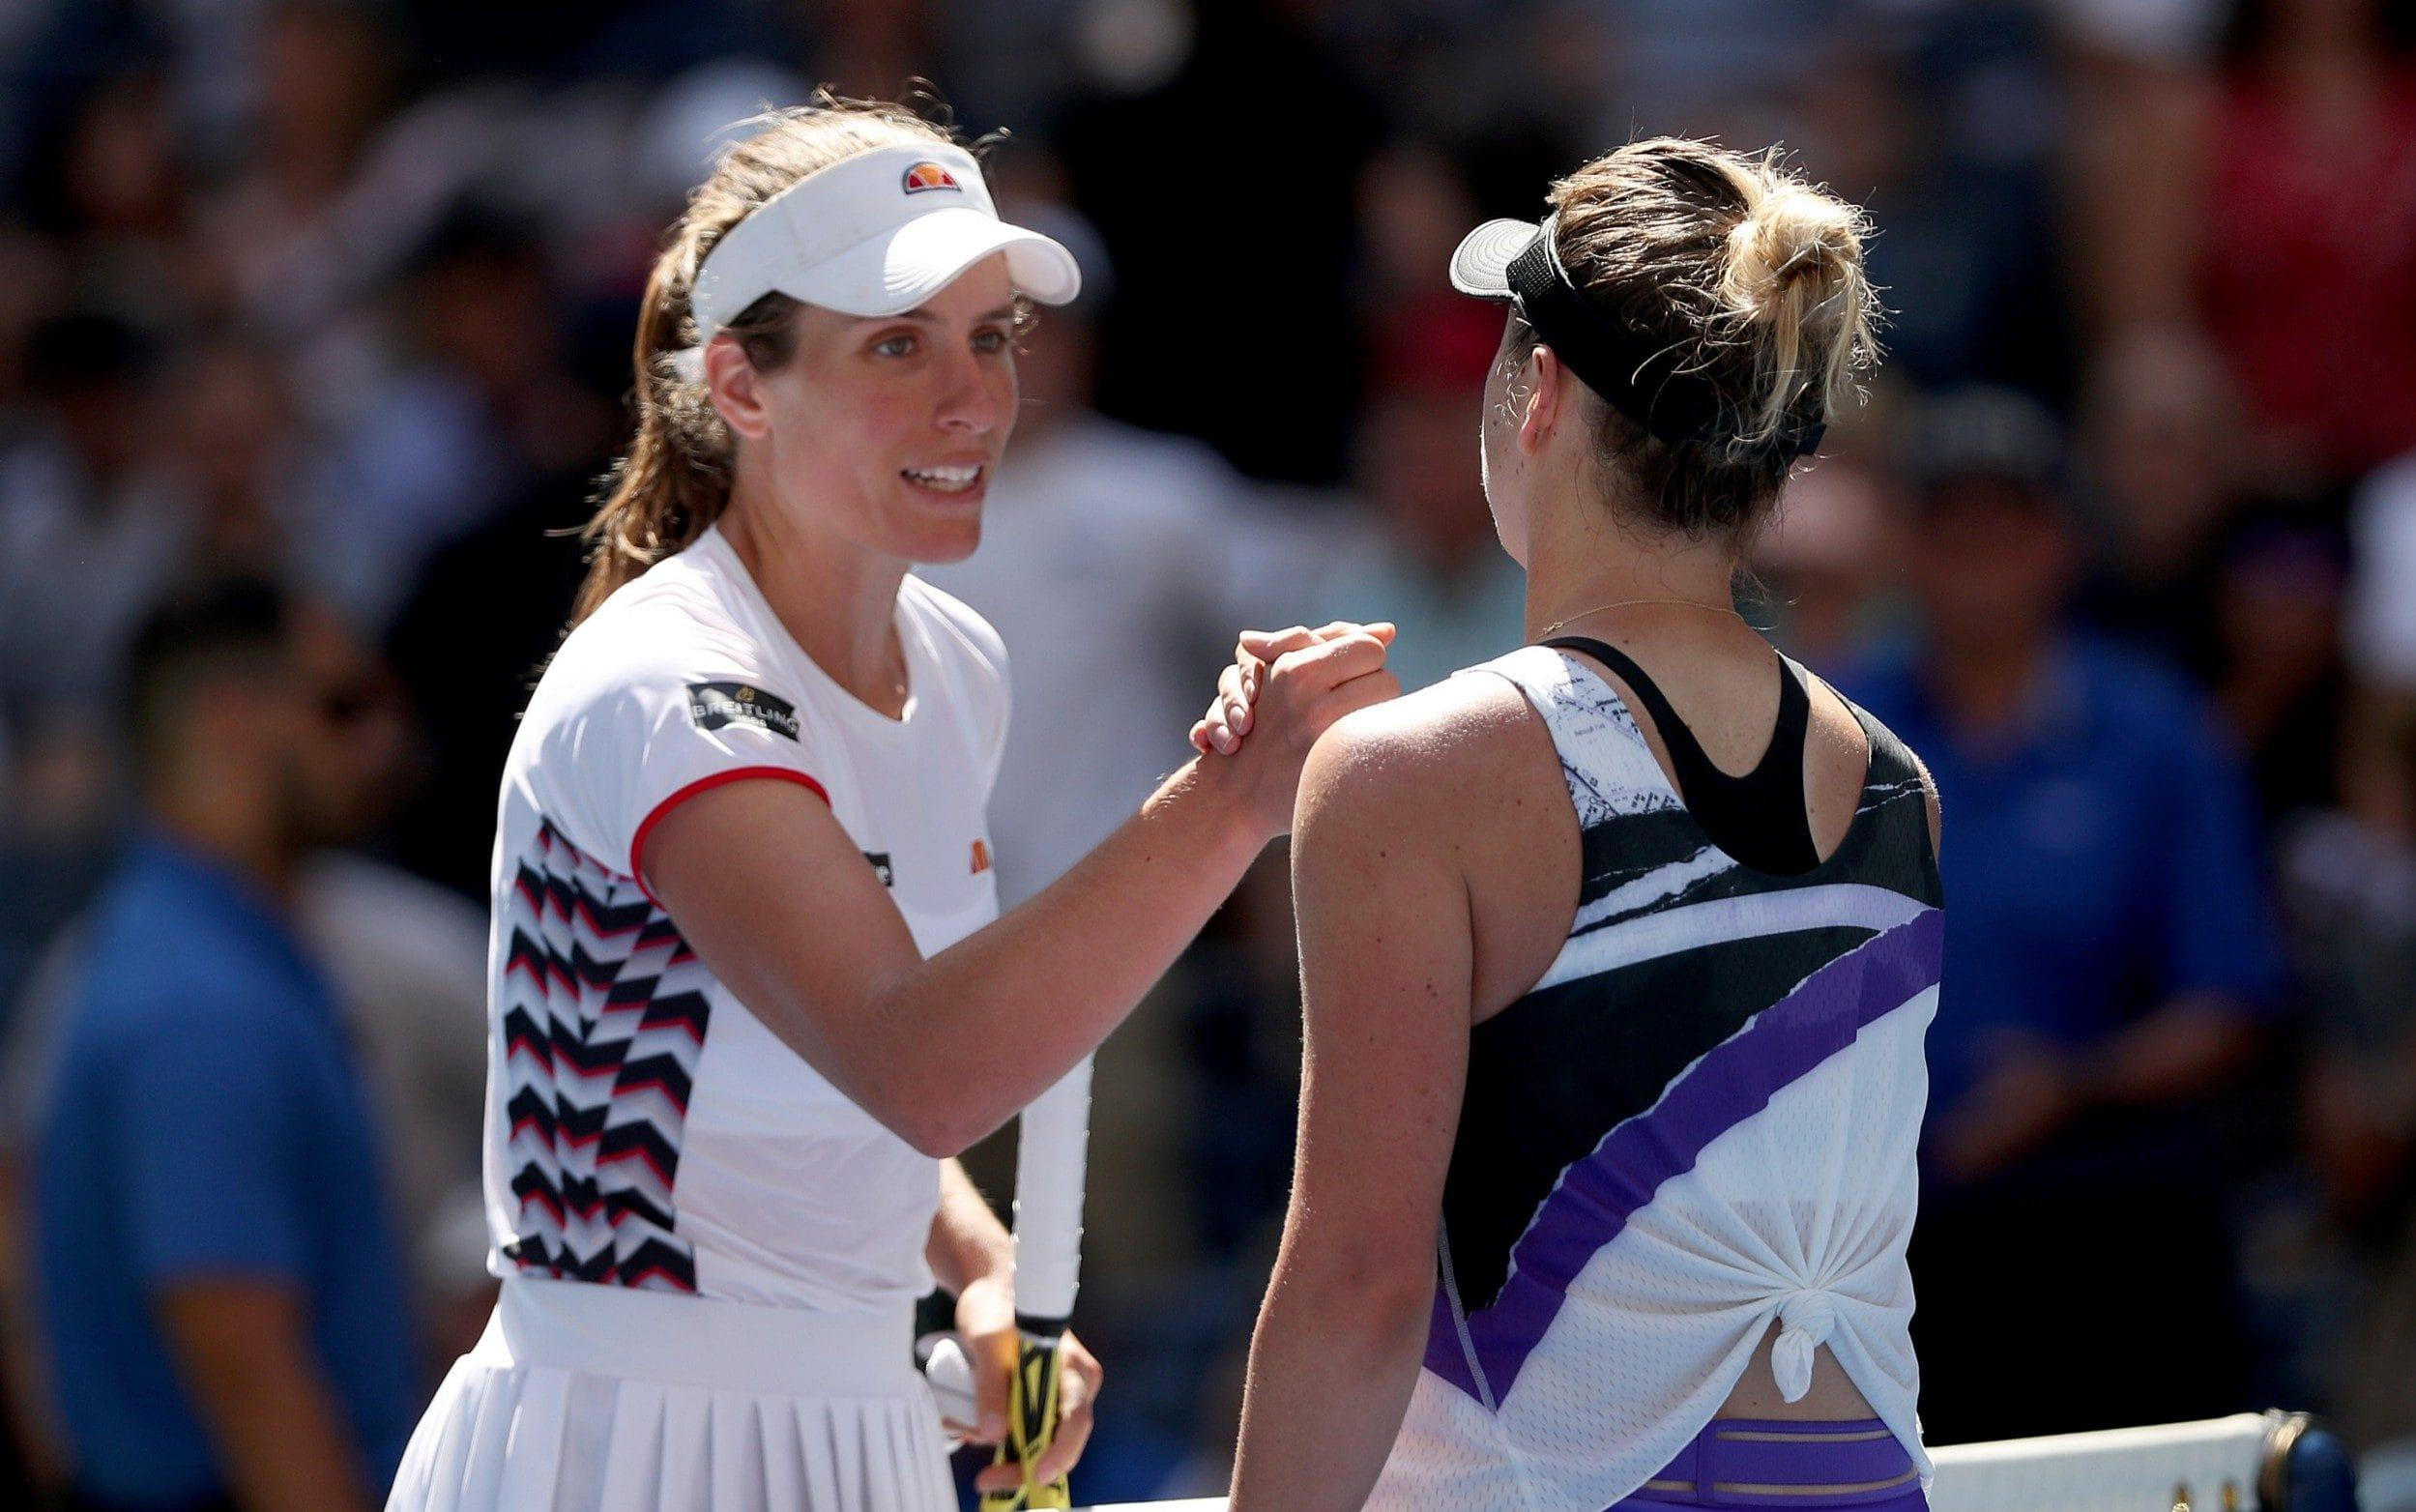 Johanna Konta out of US Open in straight sets following quarter-final defeat to Elina Svitolina